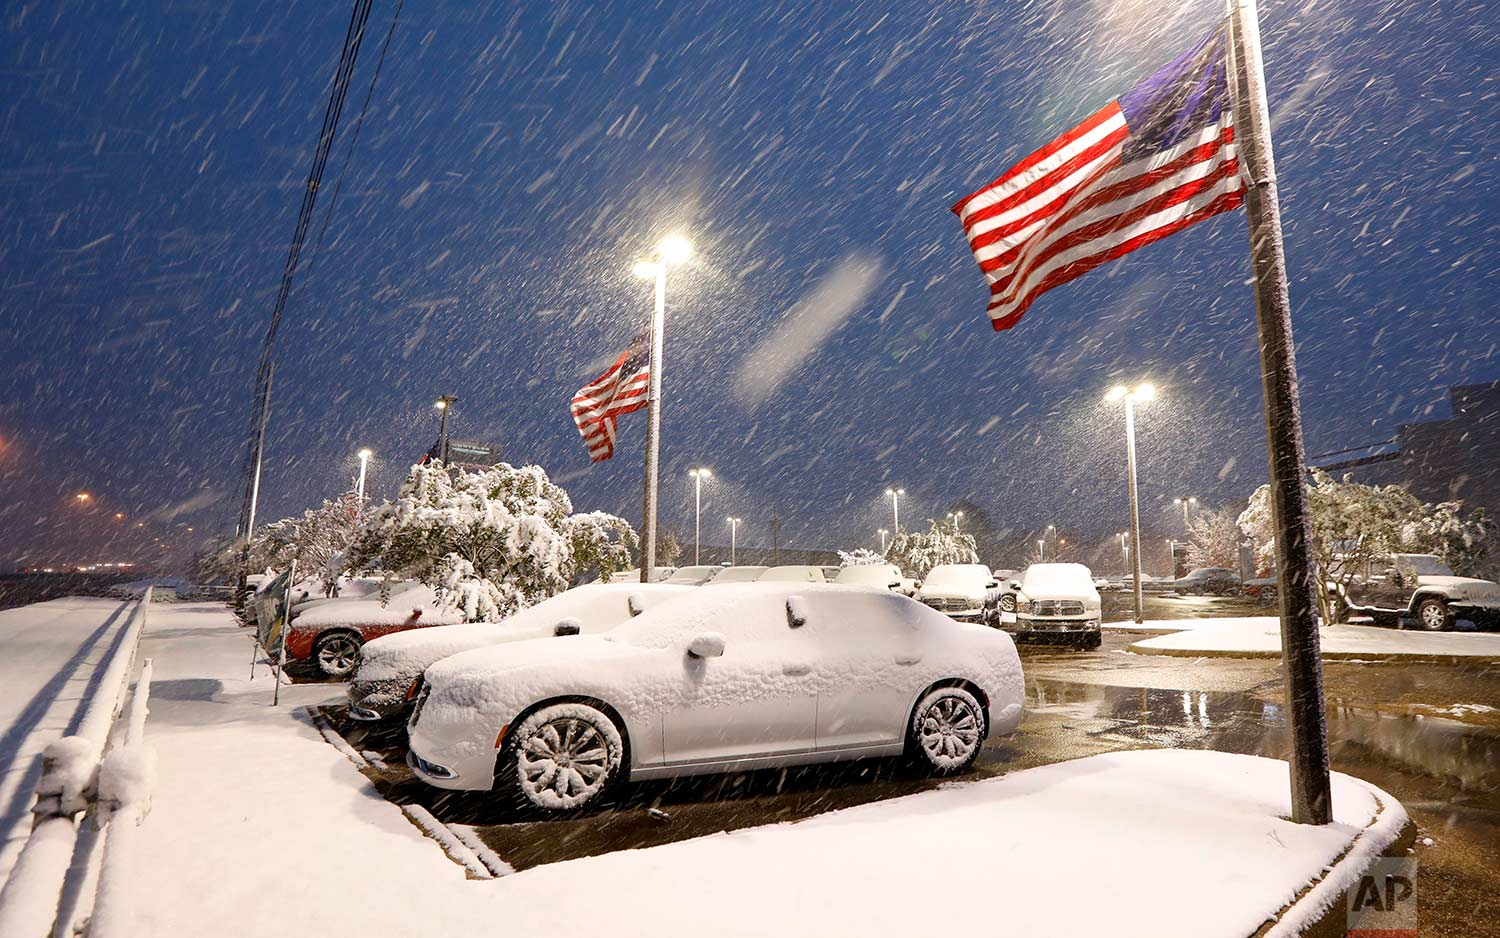 U.S. flags wave as snow falls, blanketing vehicles in a car sales lot, Friday, Dec. 8, 2017, in Jackson, Miss. (AP Photo/Rogelio V. Solis)